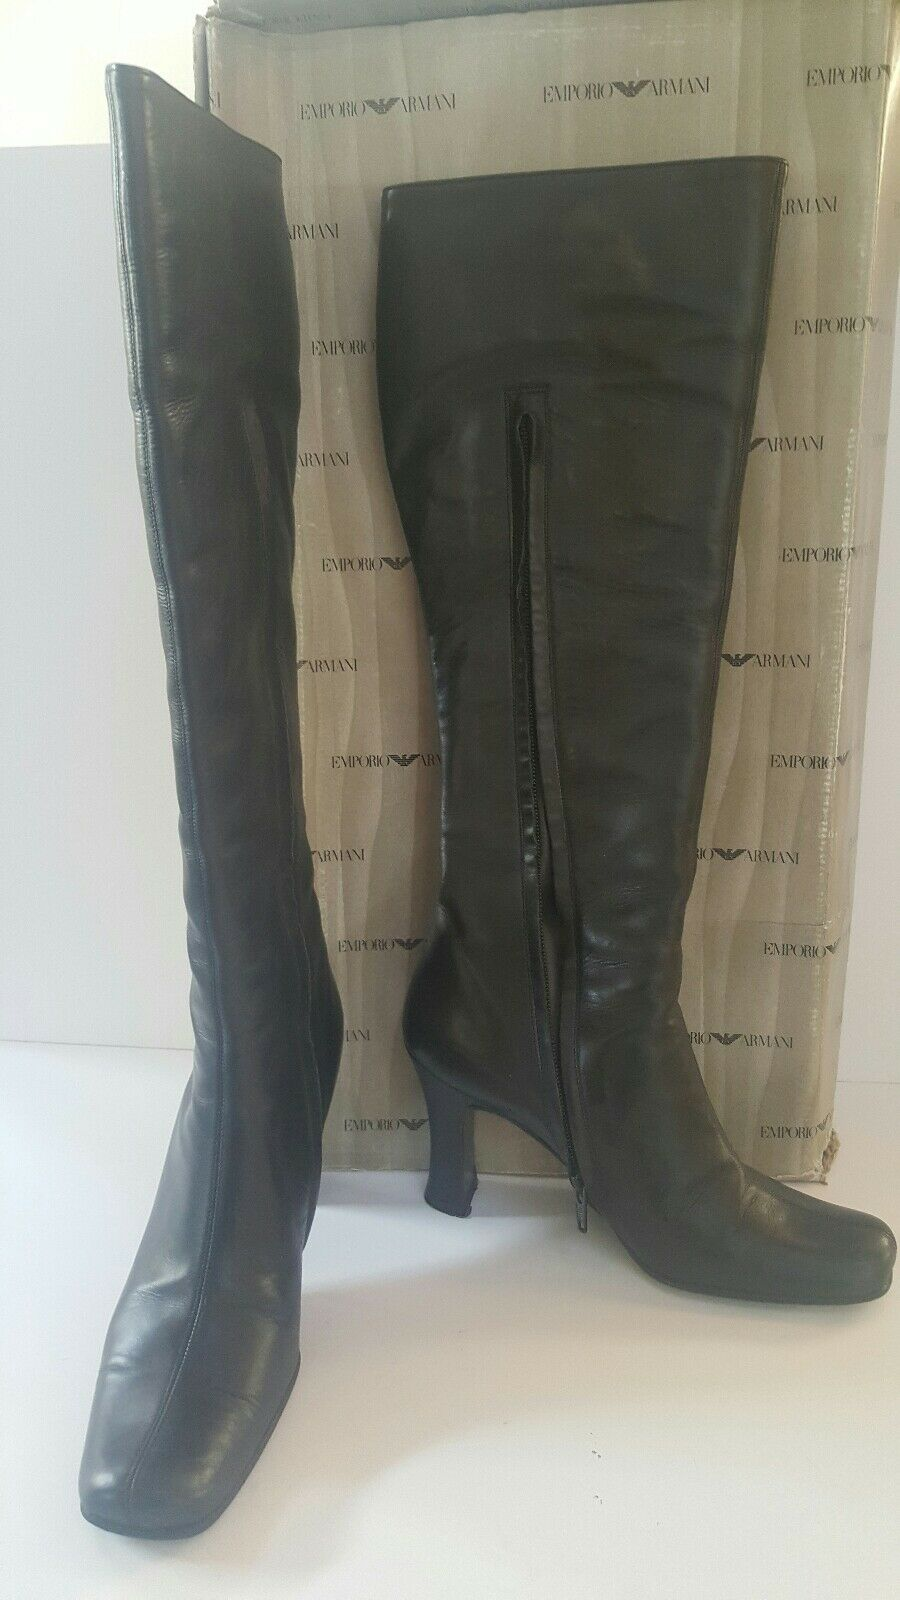 Emporio Armani Boots Women's Leather Black Knee High Heels 36.5/6 1/2 US Shoes